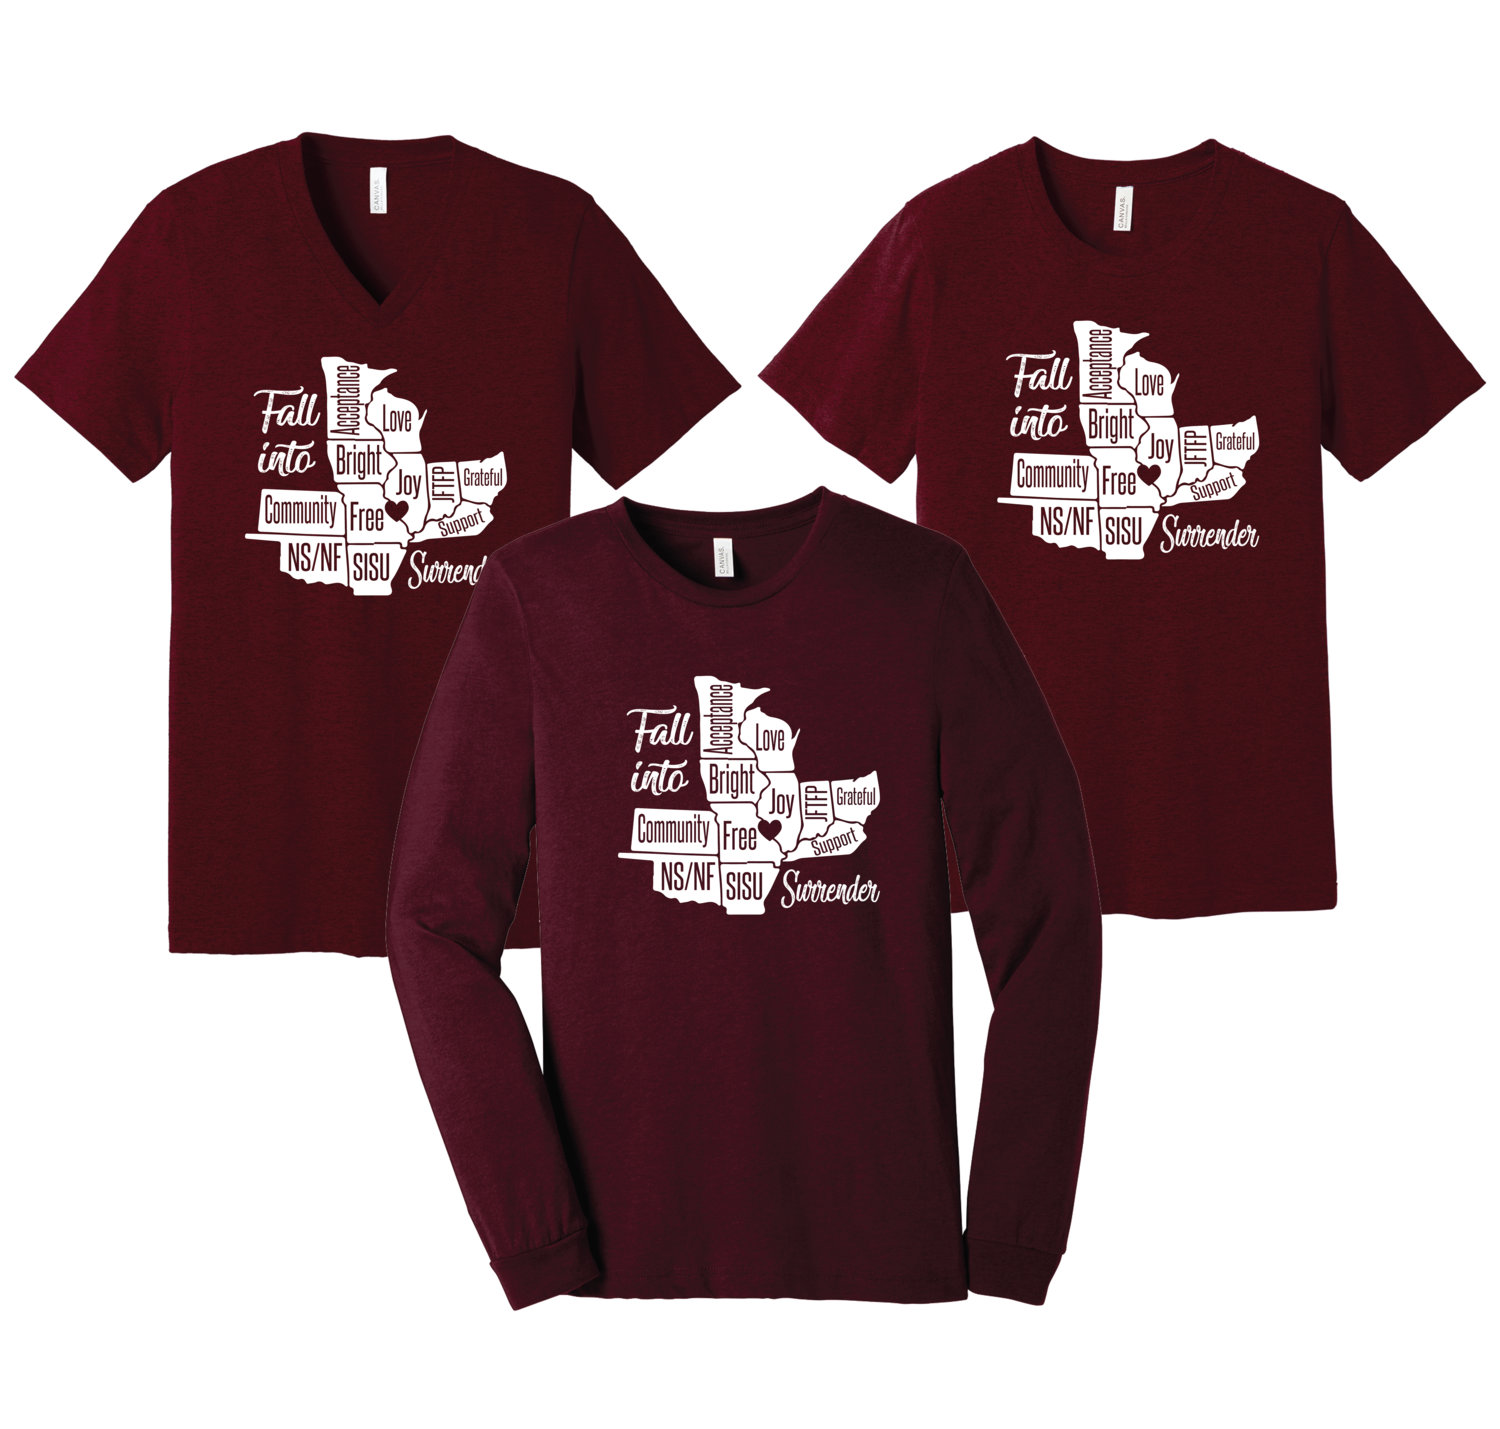 Retreat Tees - Order by 8/23 for free shipping!